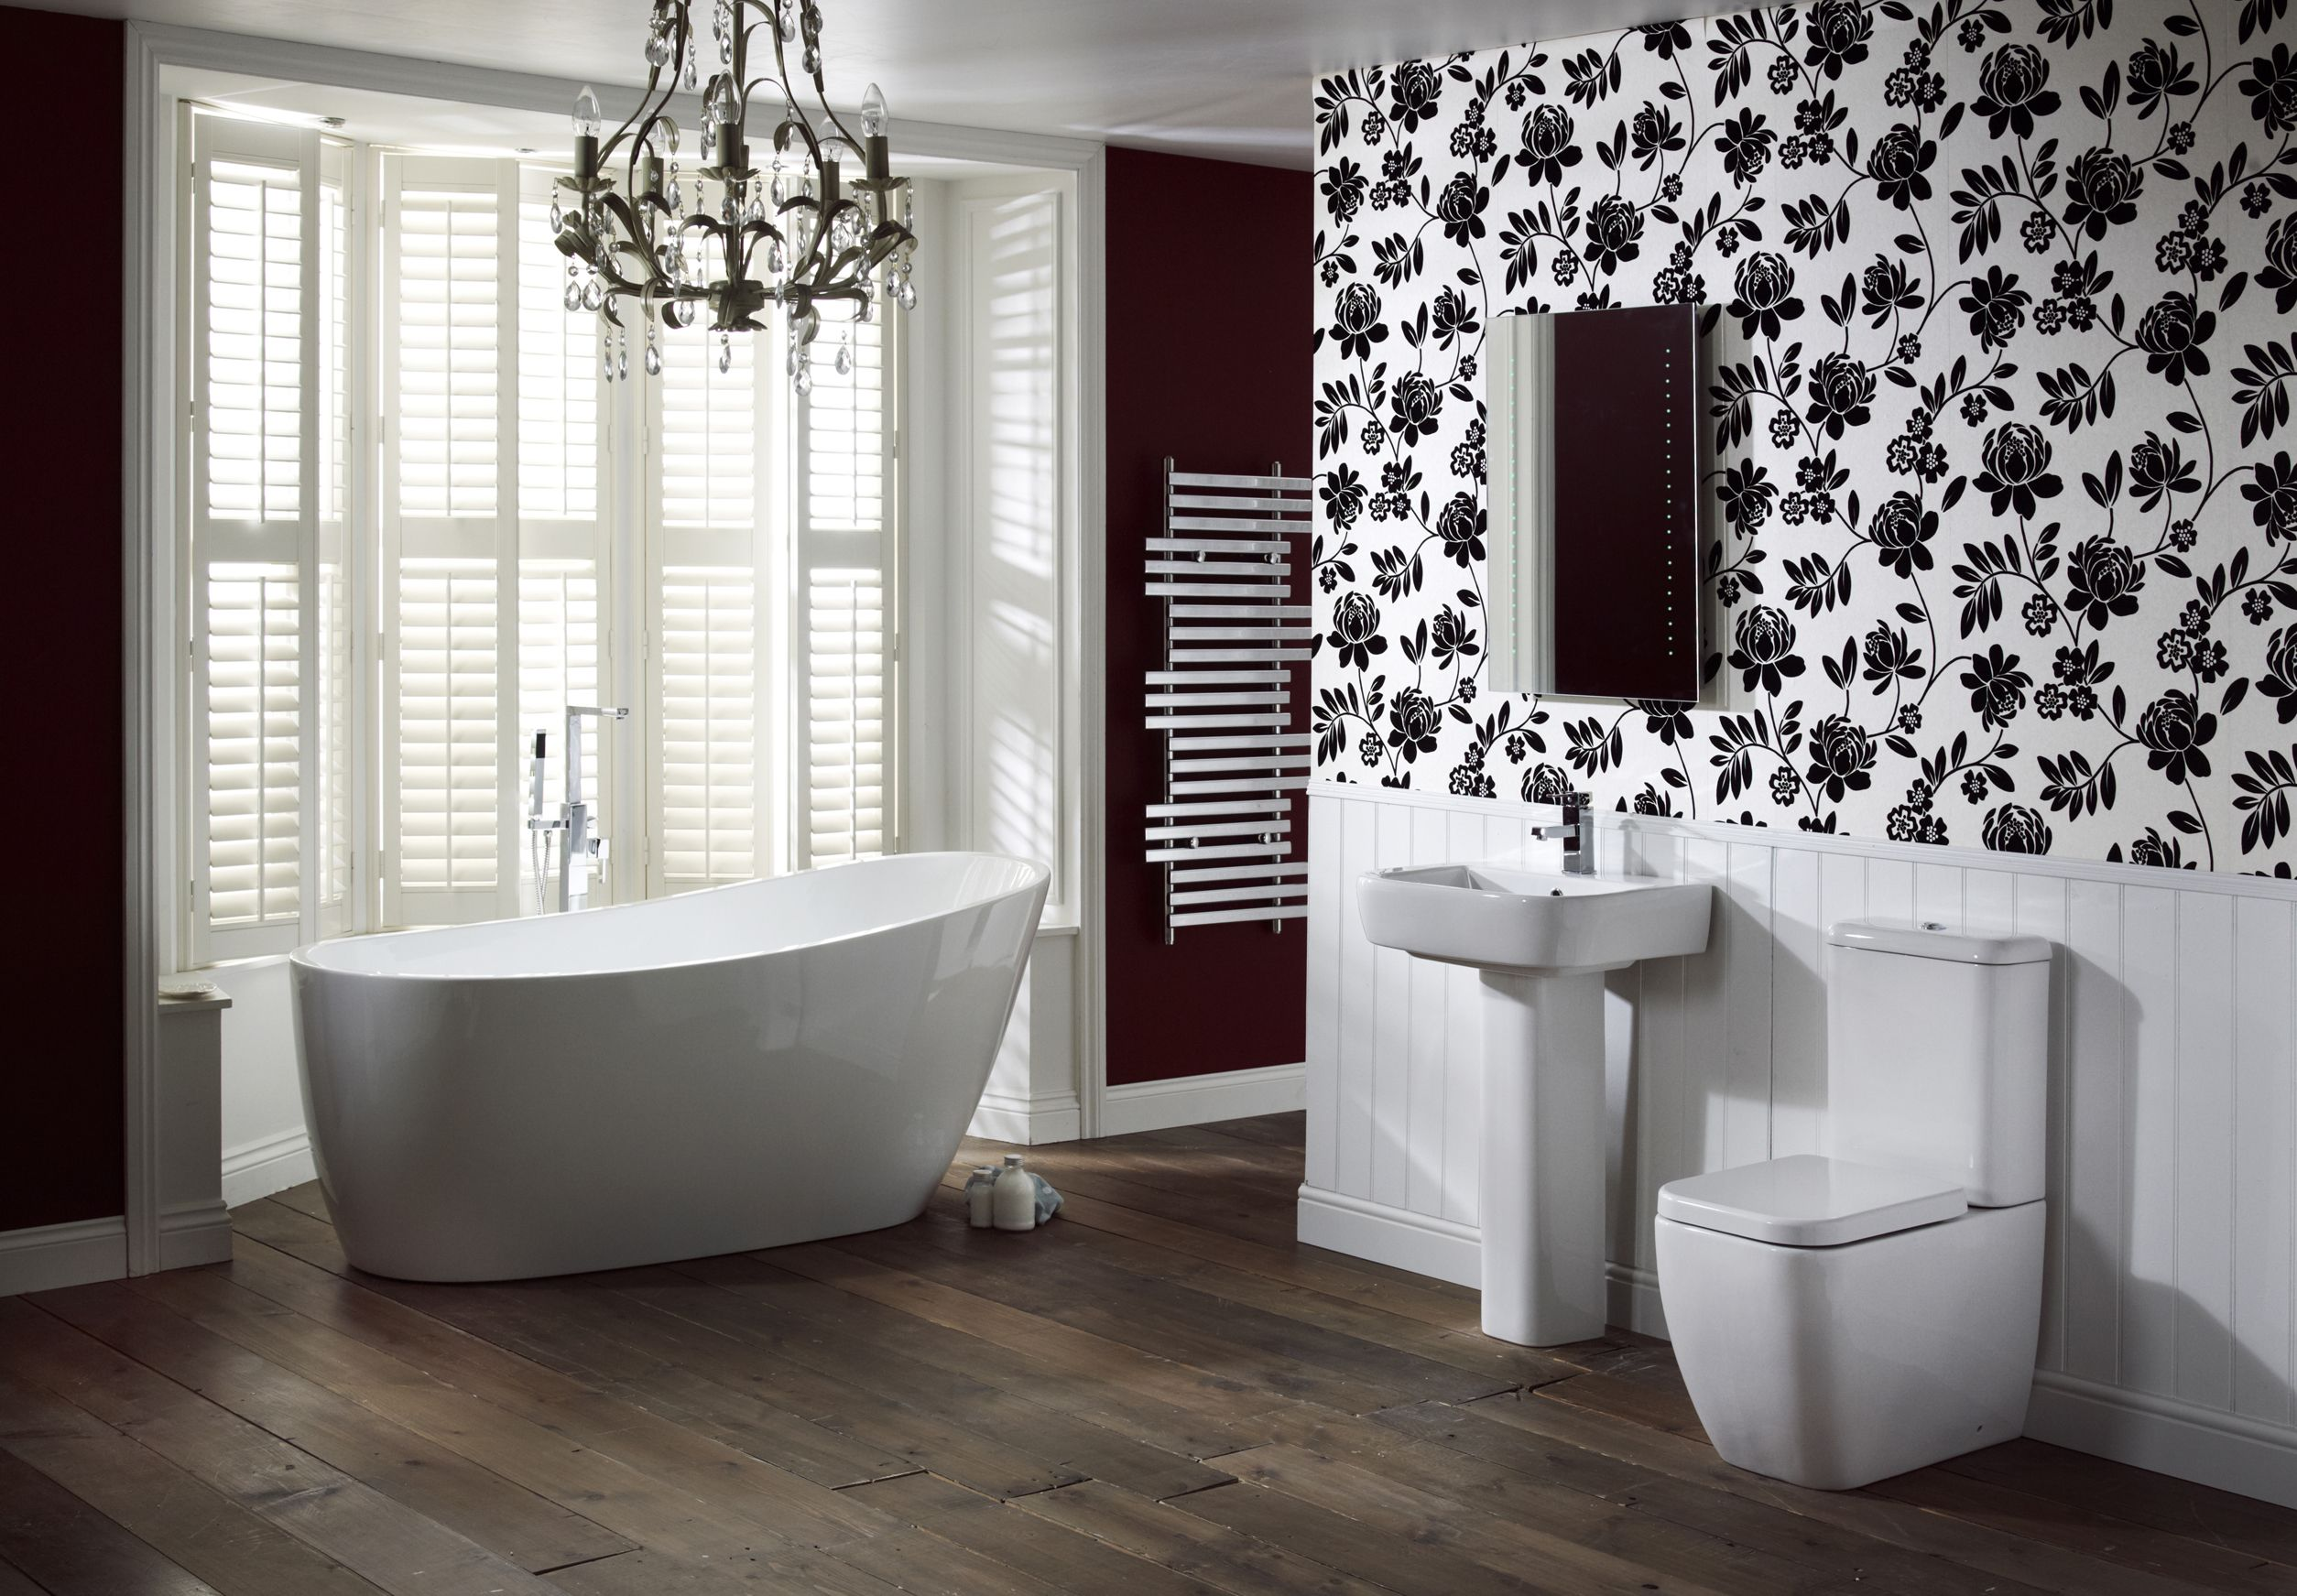 Can I Use Wallpaper In My Bathroom